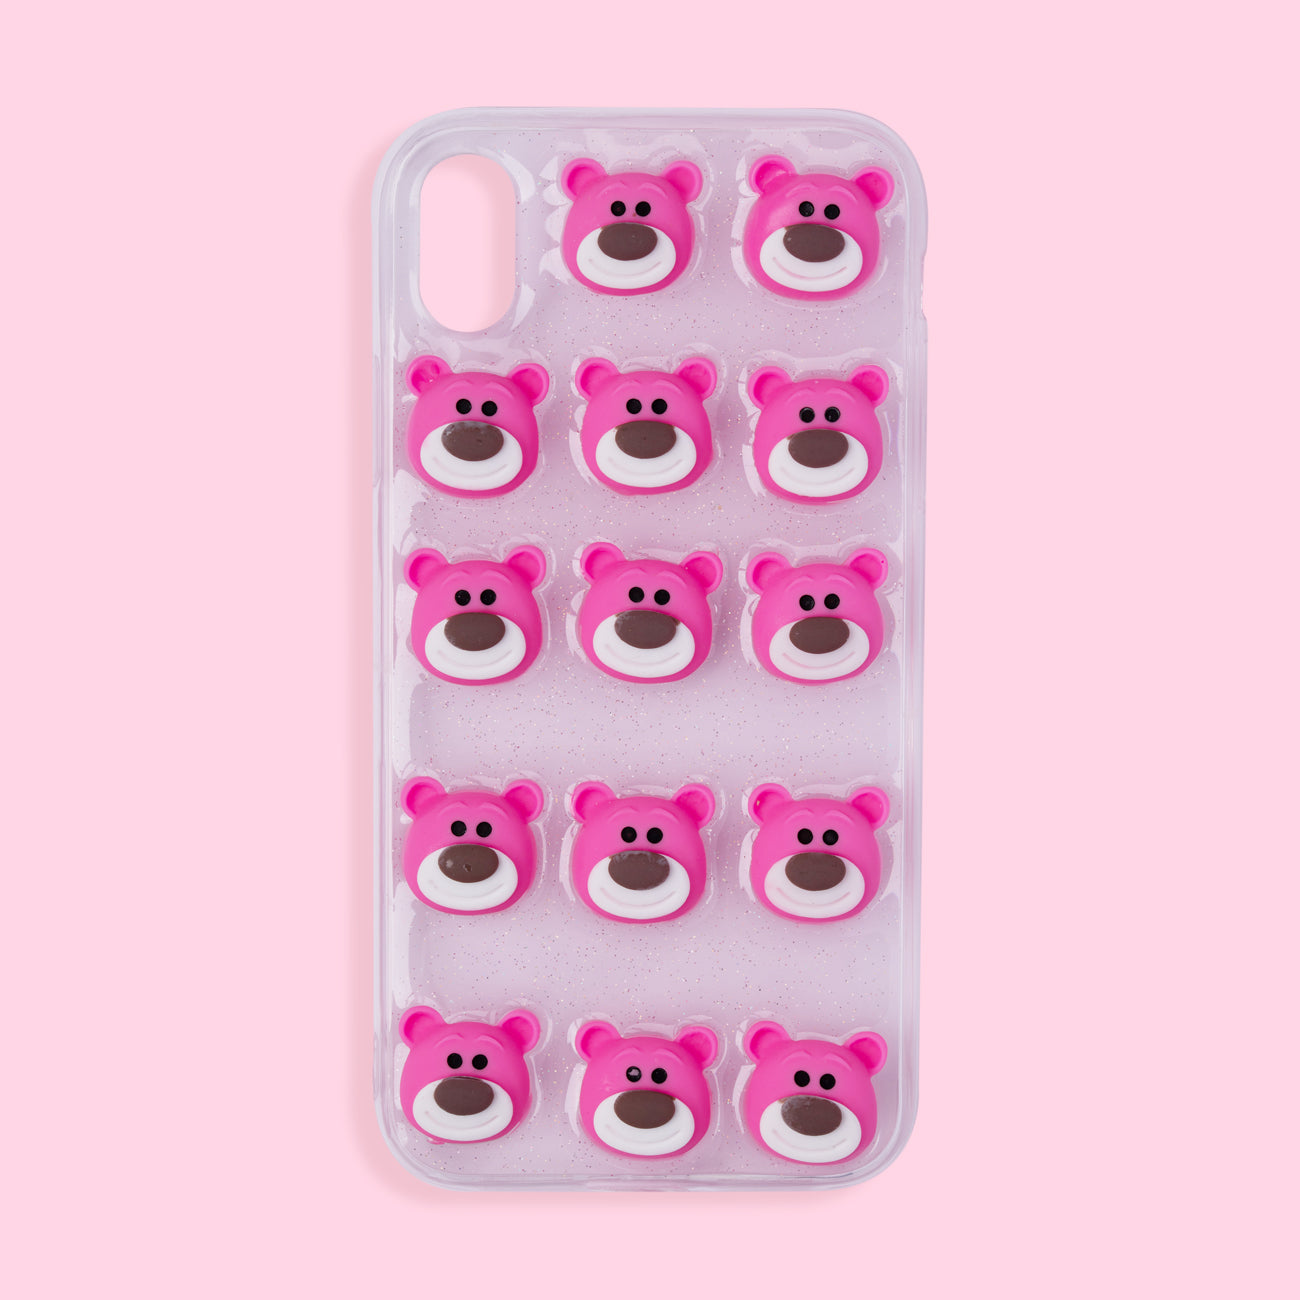 iPhone XR Case - 3D Bear - Pink